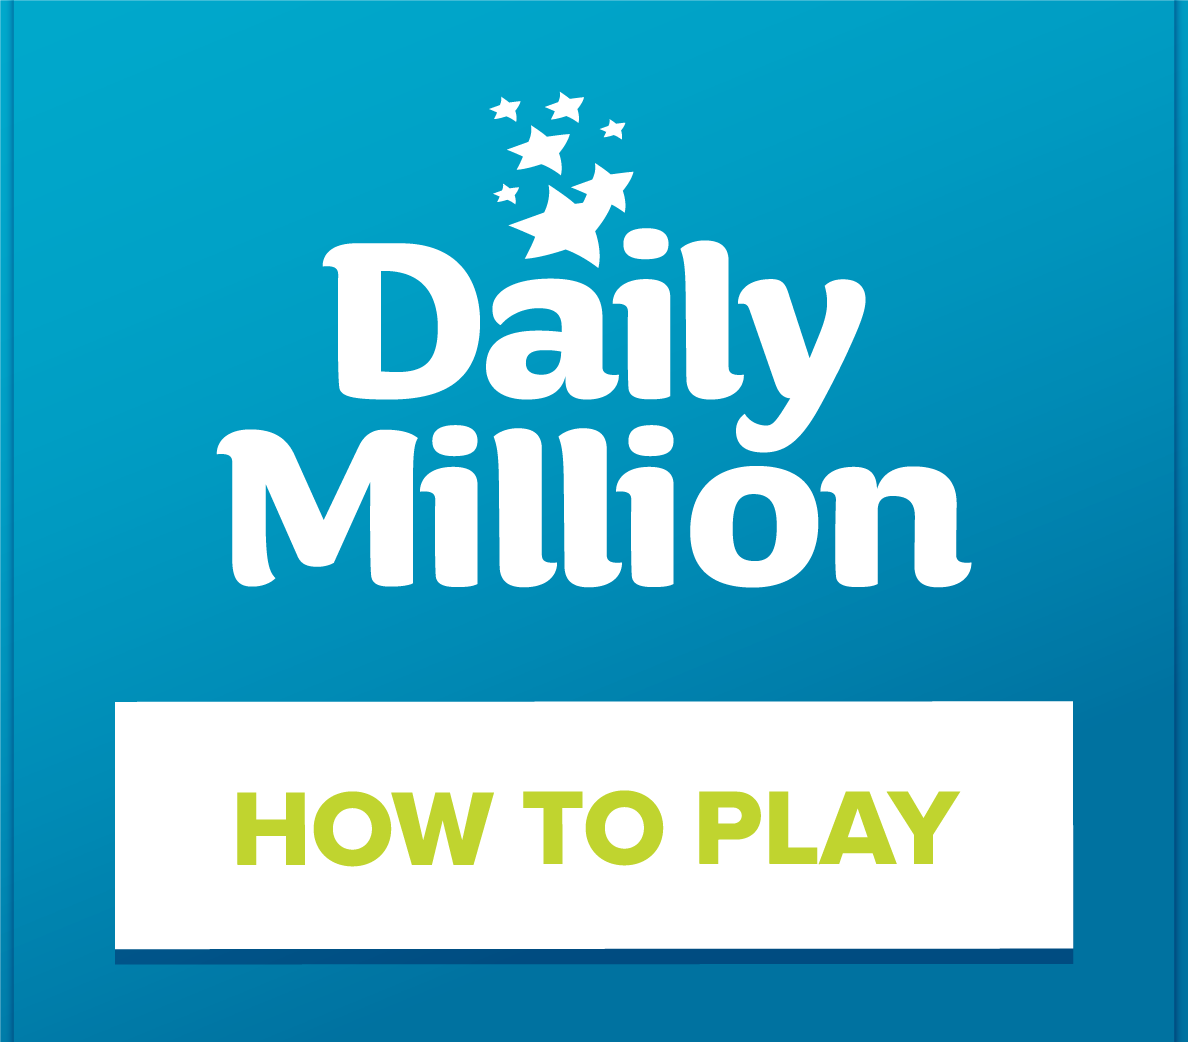 How to Play Daily Million